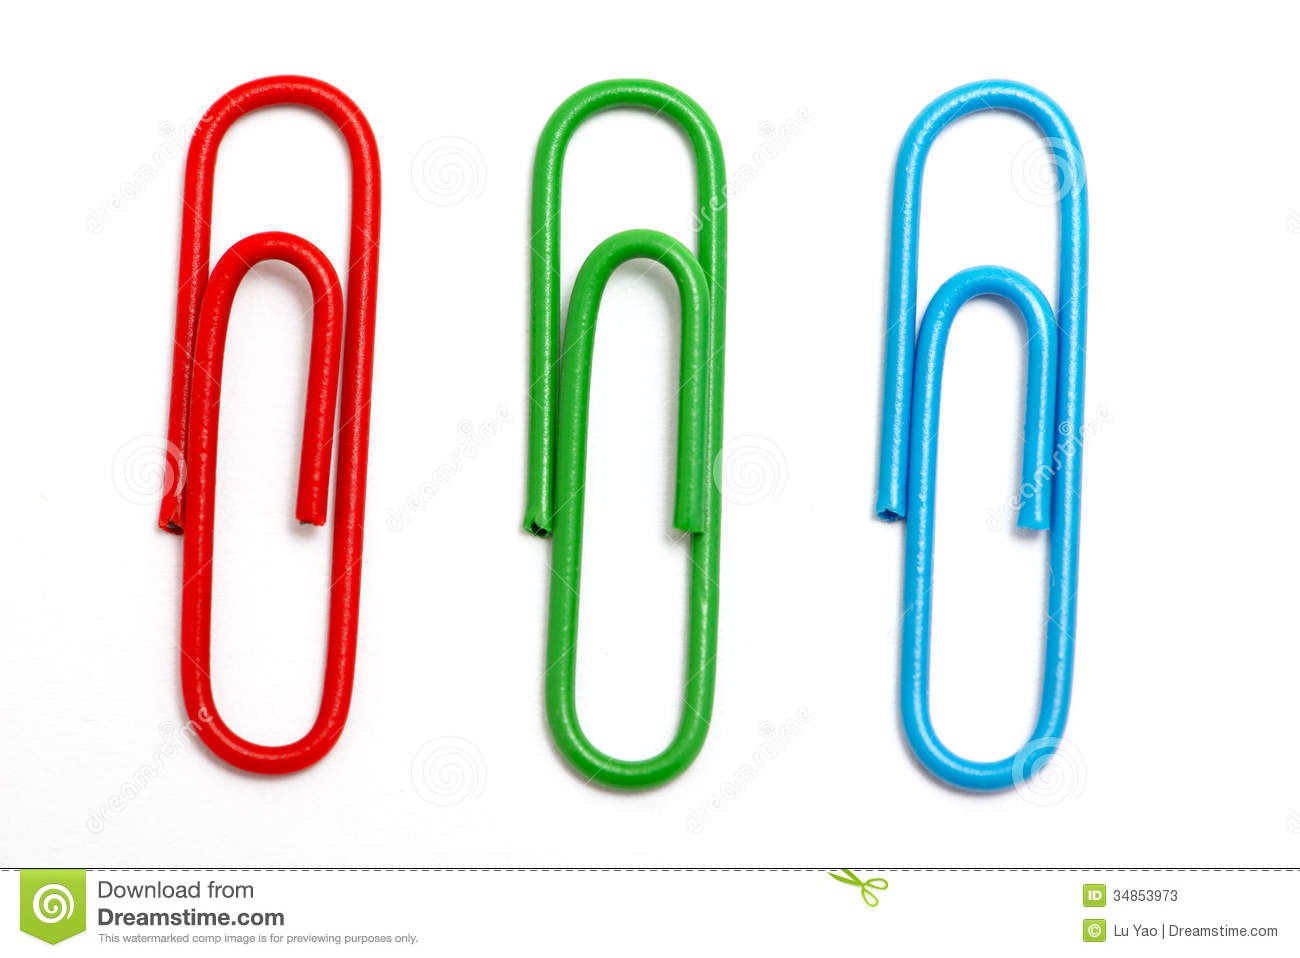 Paperclip game help